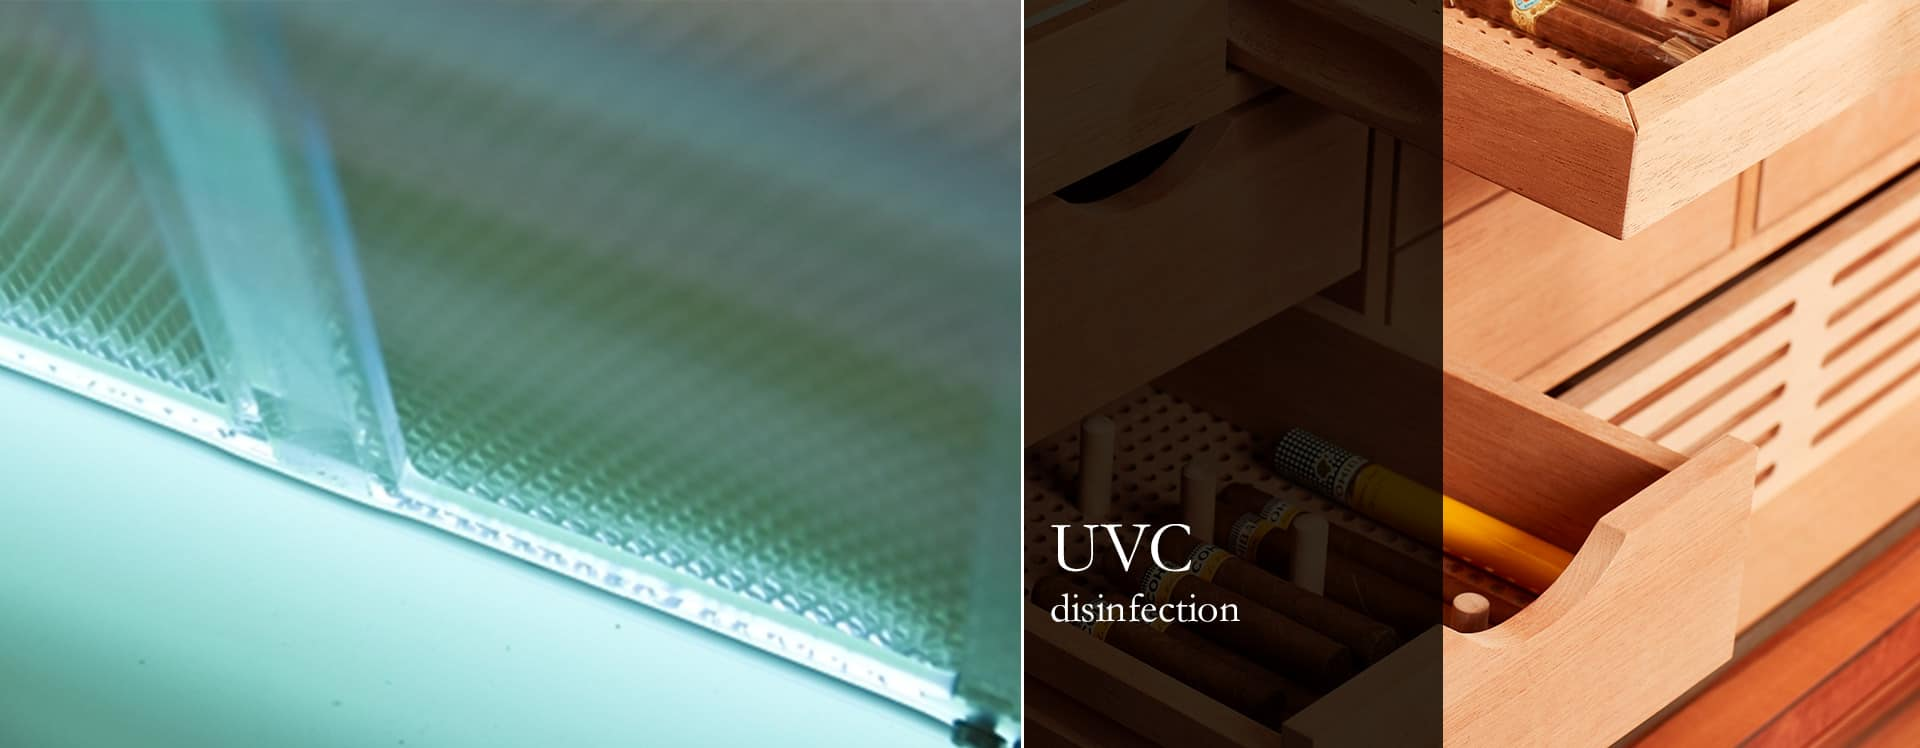 Gerber Humidors UVC-Disinfection